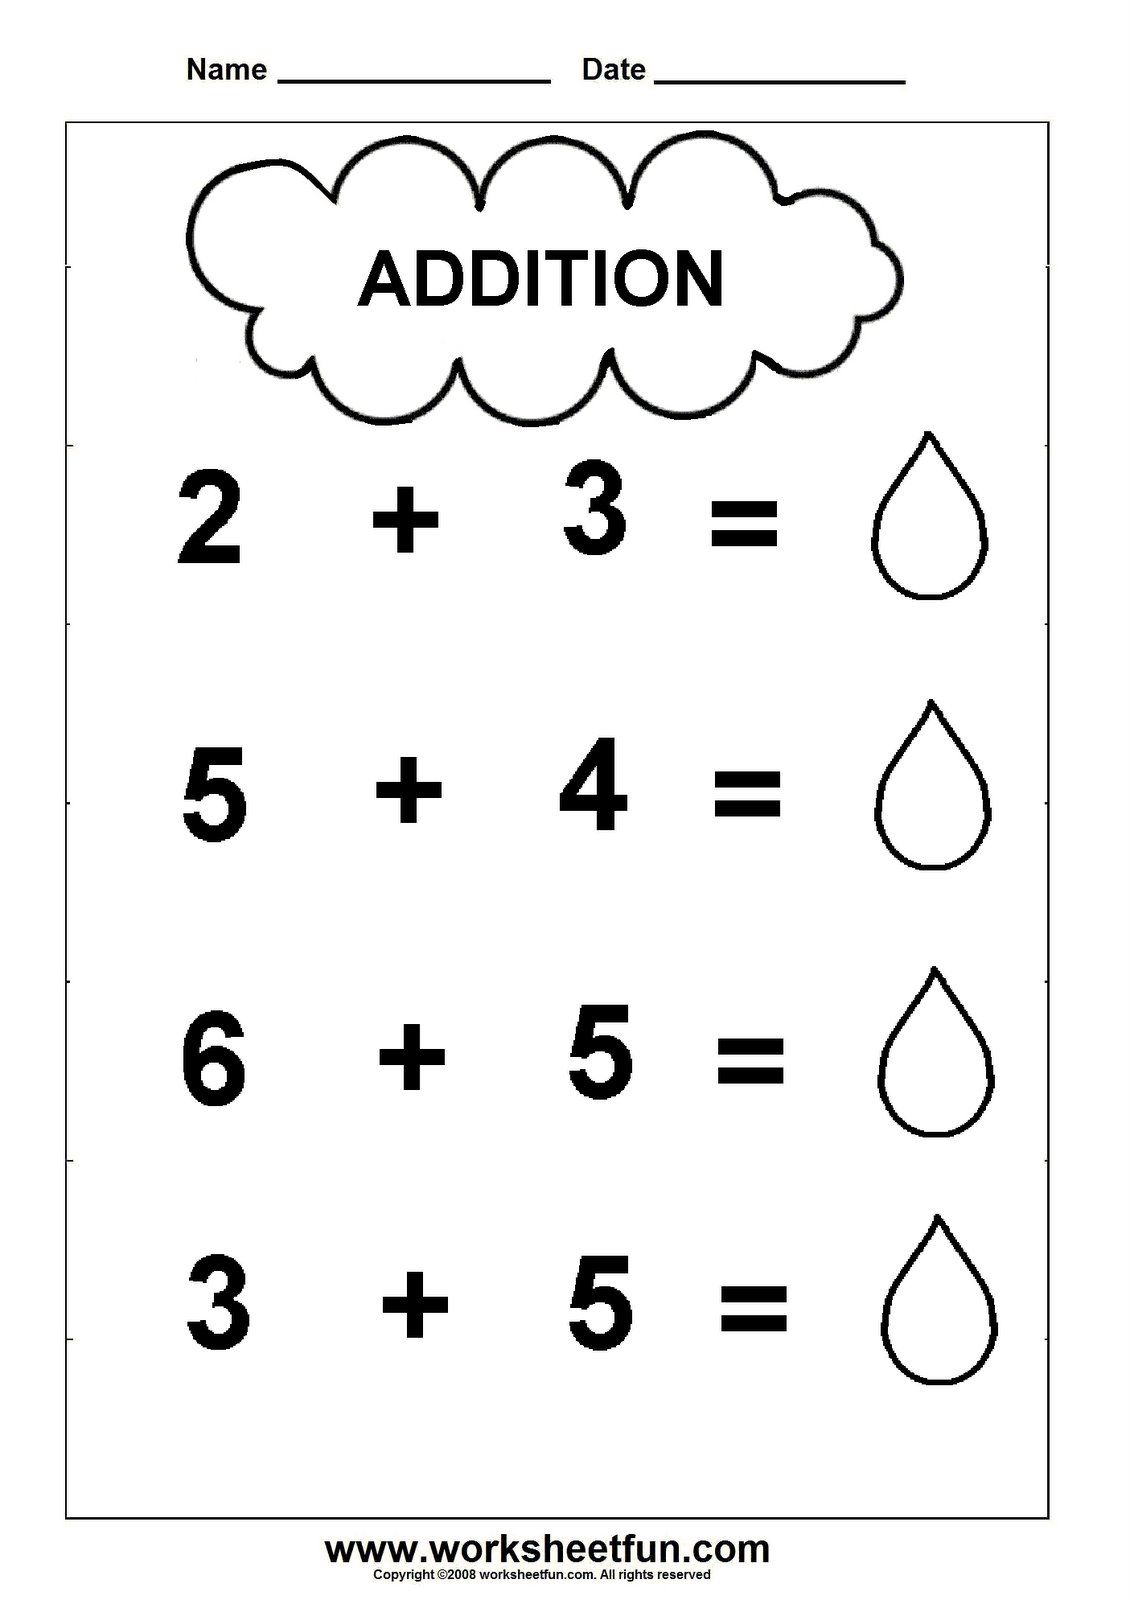 Pre-K Addition Worksheets | Addition Worksheet - cloud theme - 1 ...